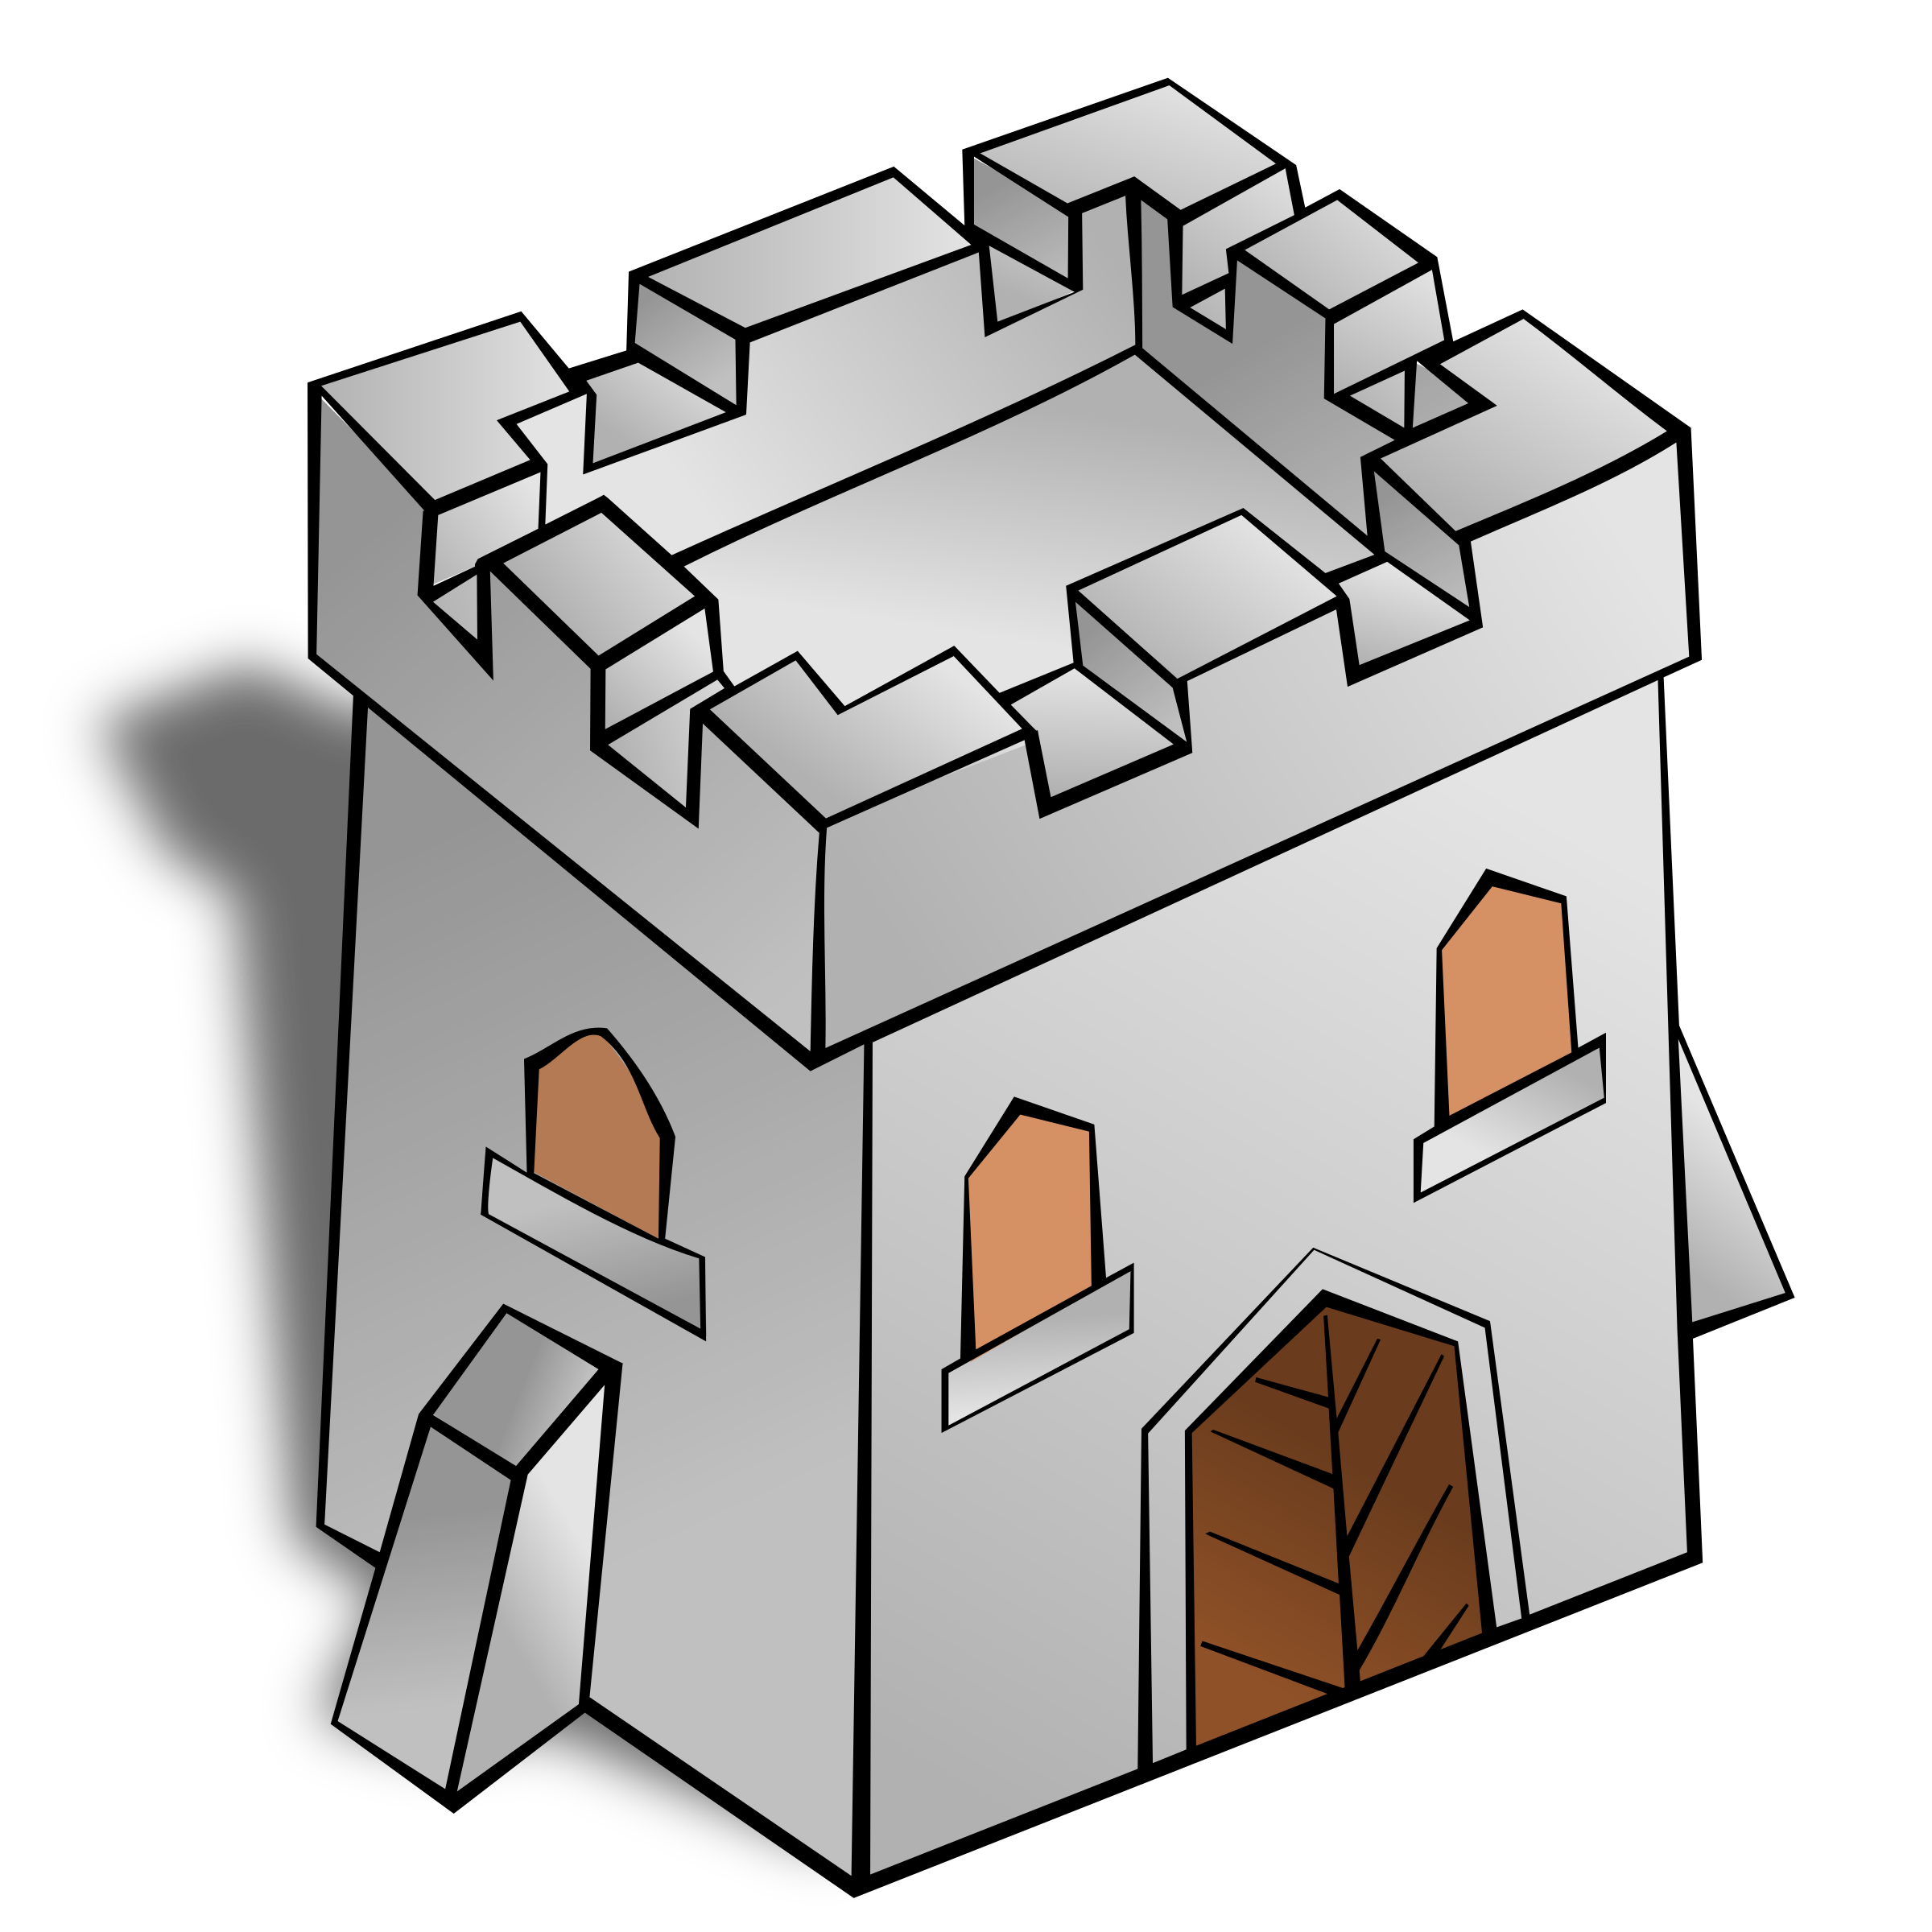 Tower clipart building tower. Rpg map symbols square